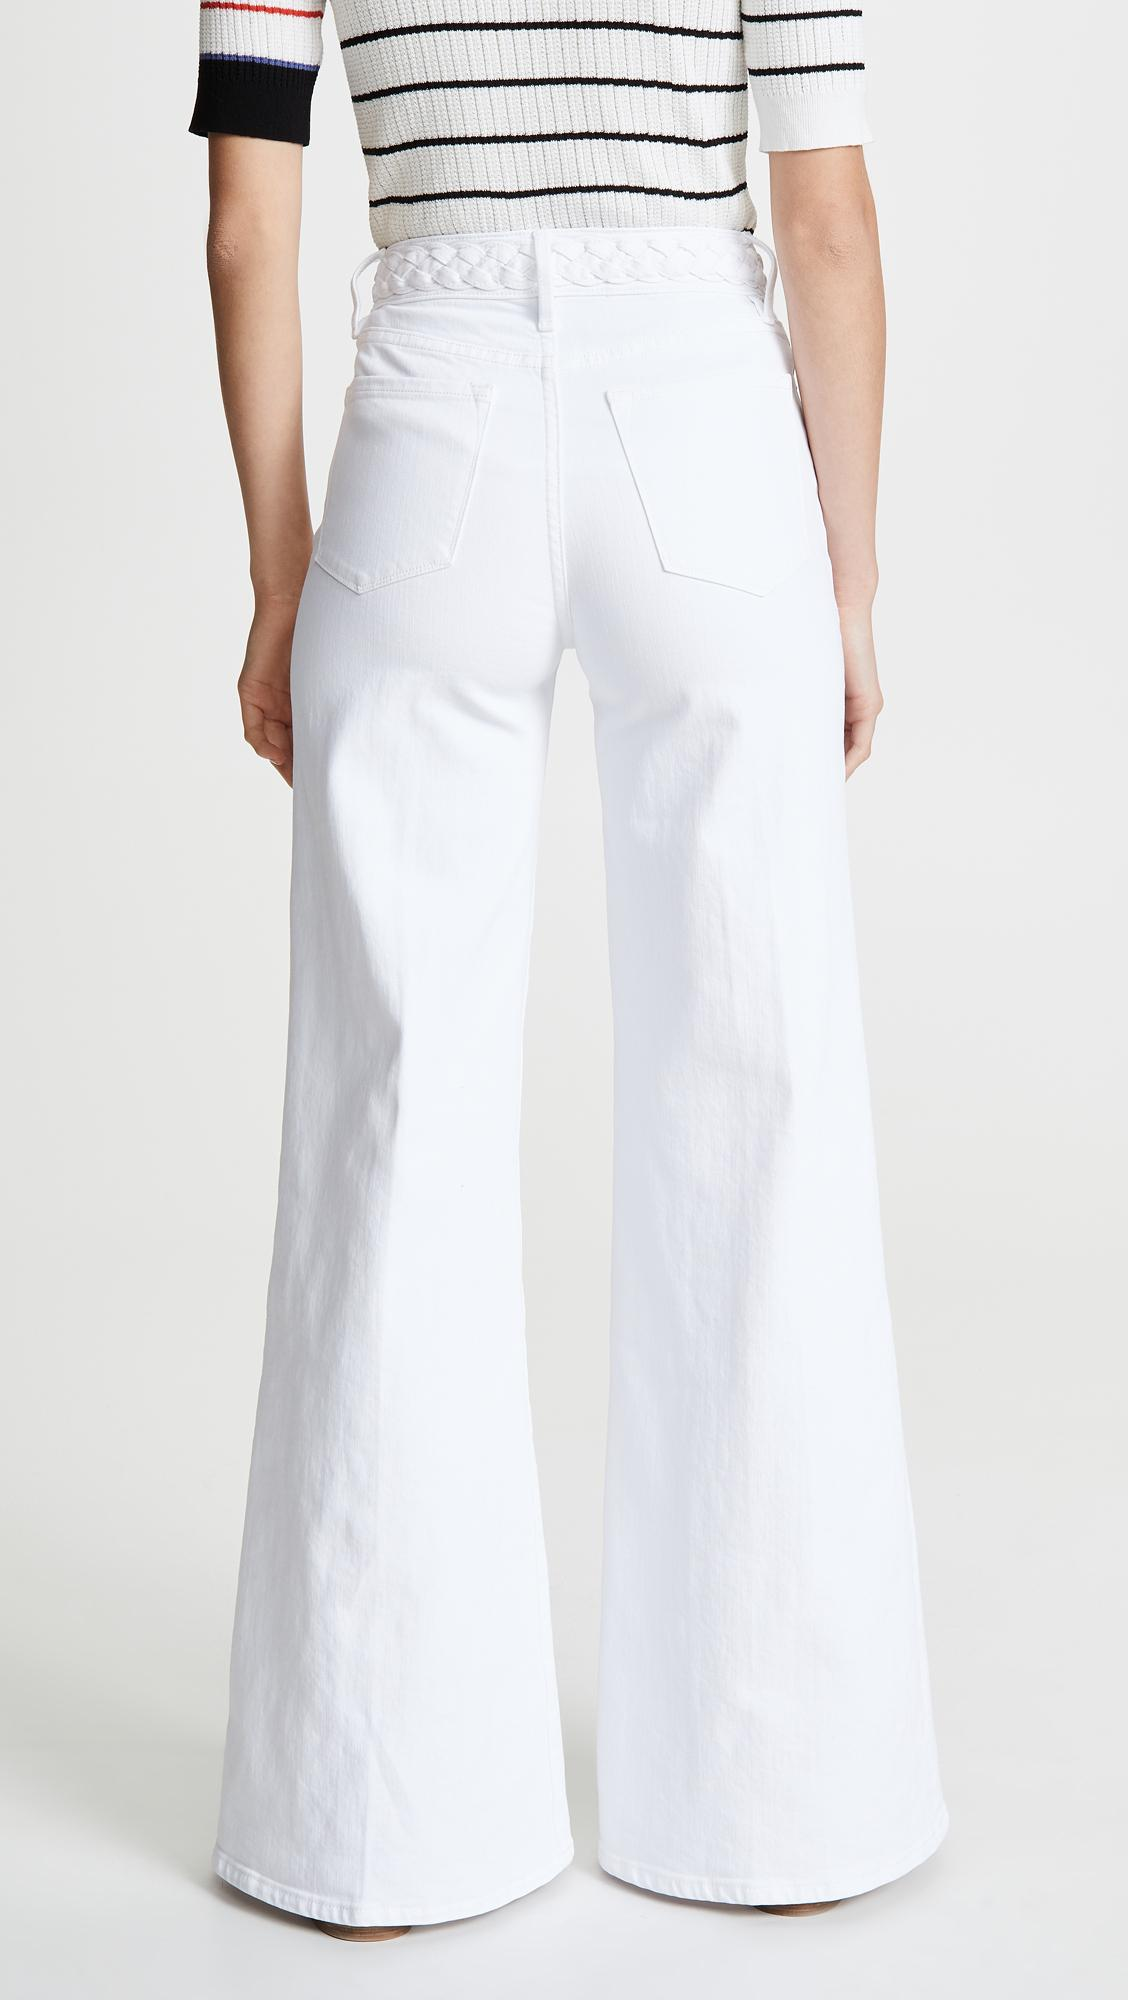 619435f24a FRAME - White Le Palazzo Braided Waistband Jeans - Lyst. View fullscreen